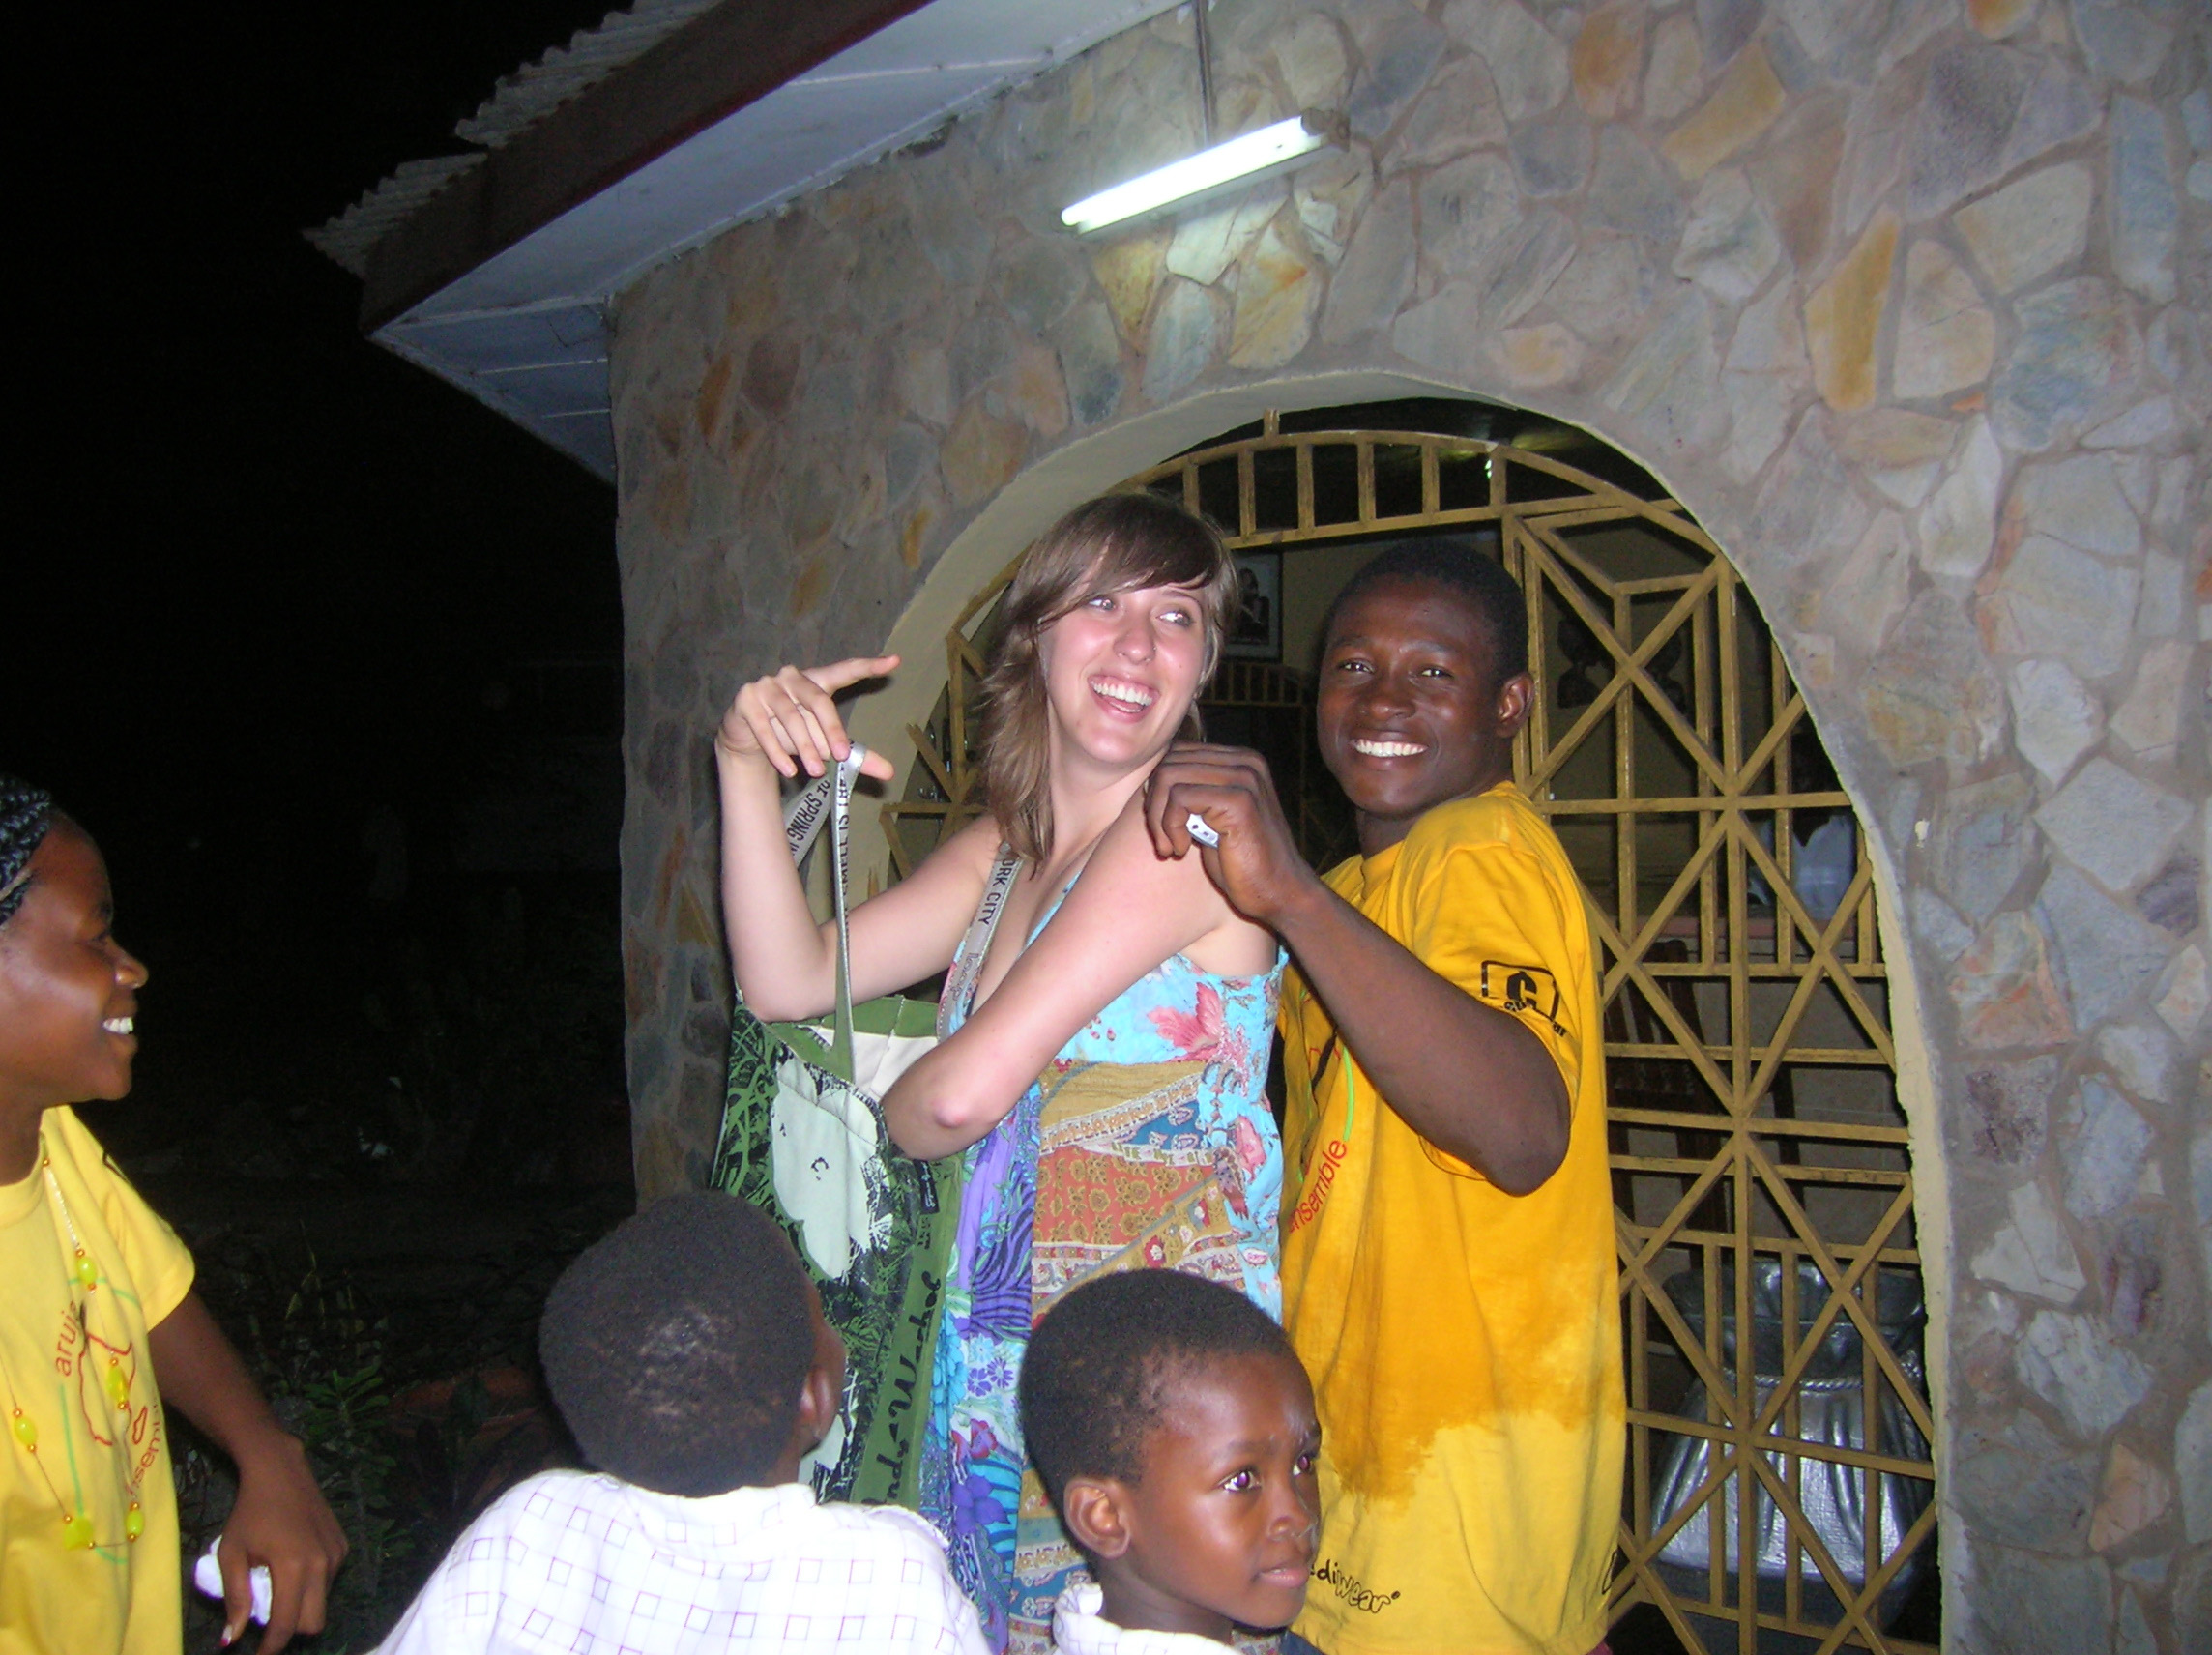 Caitlin and dance troupe in Ghana (July 2008)